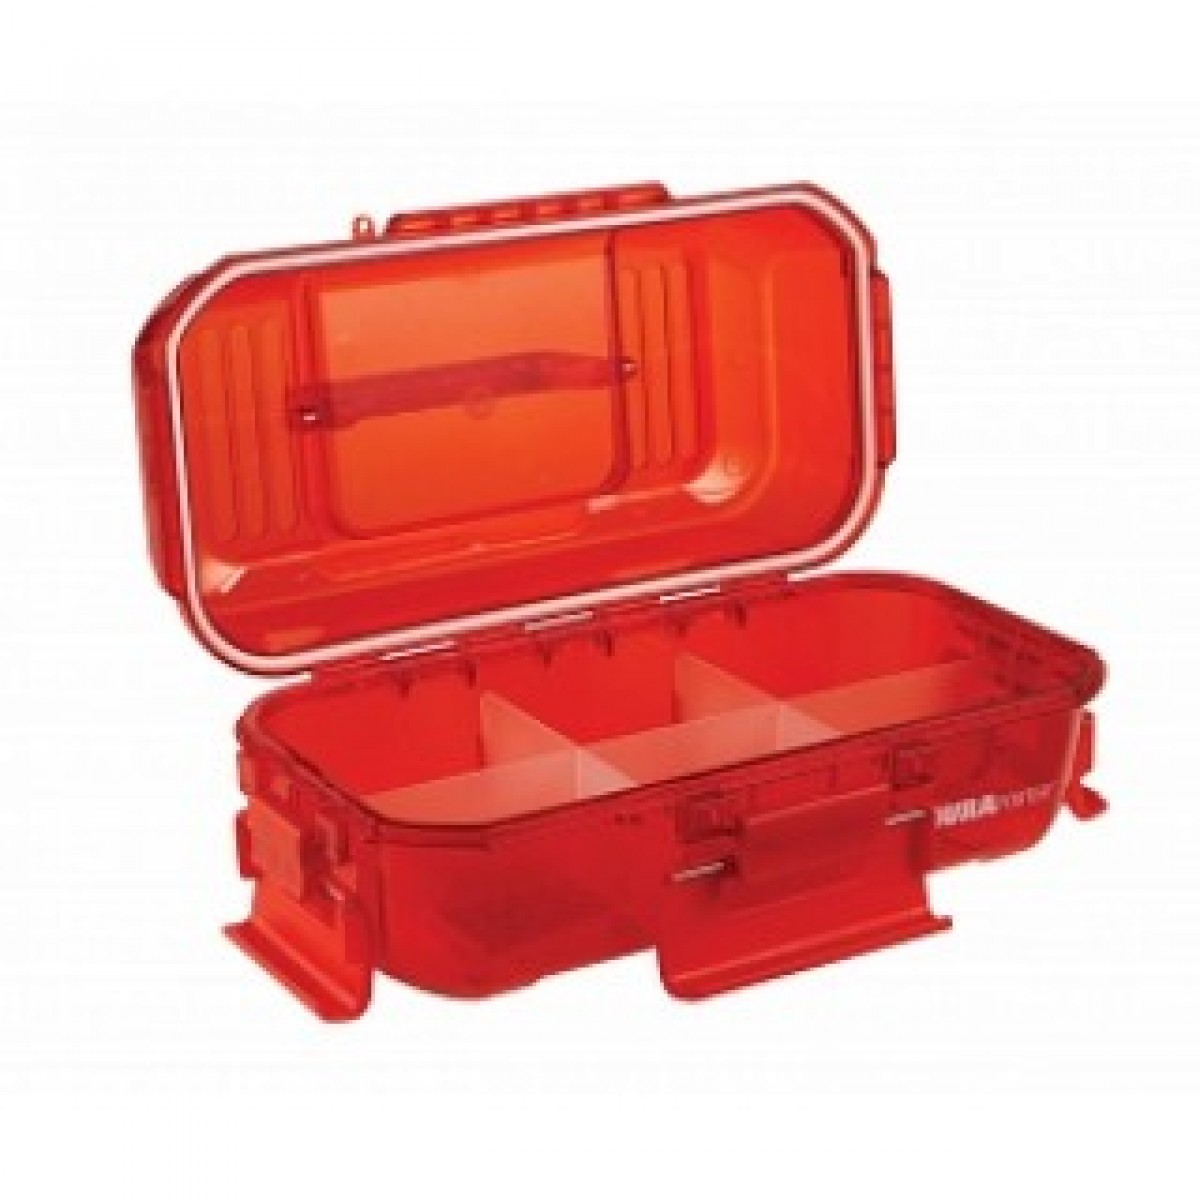 DuraPorter Transport Box, Red